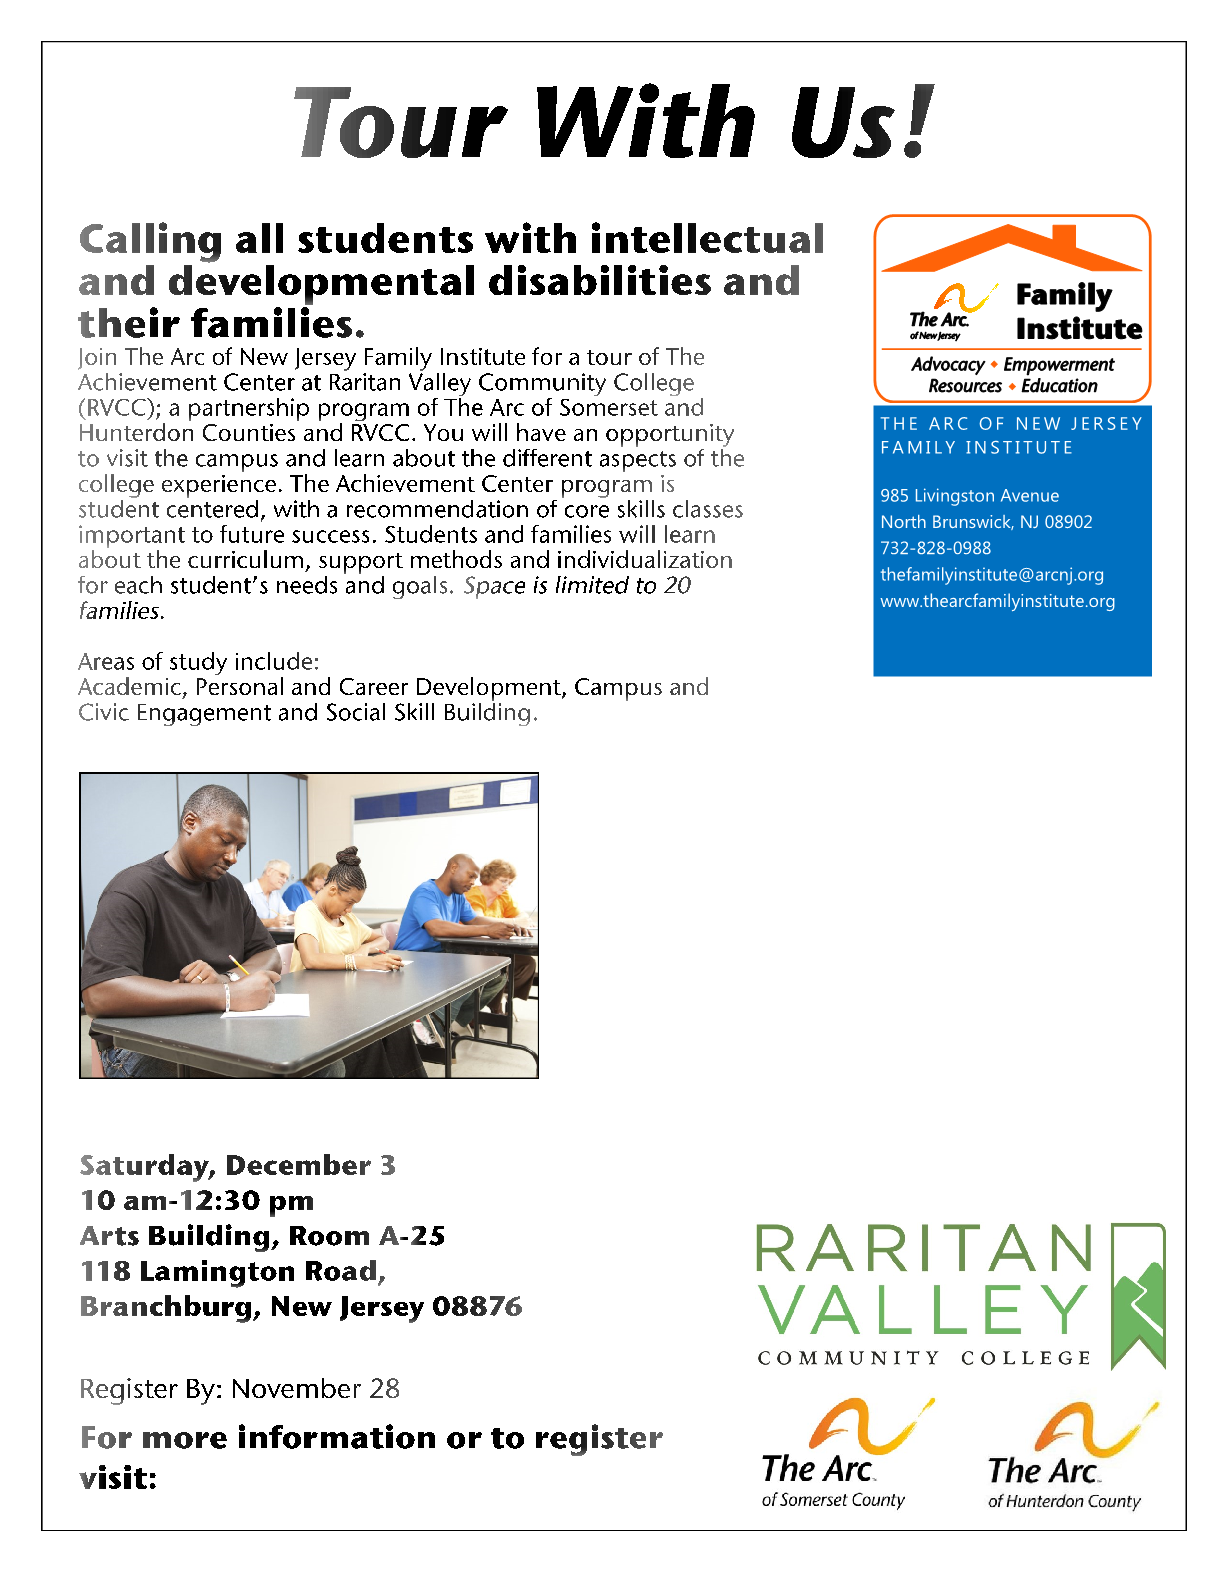 Raritan Valley Community College Tour - Somerset County